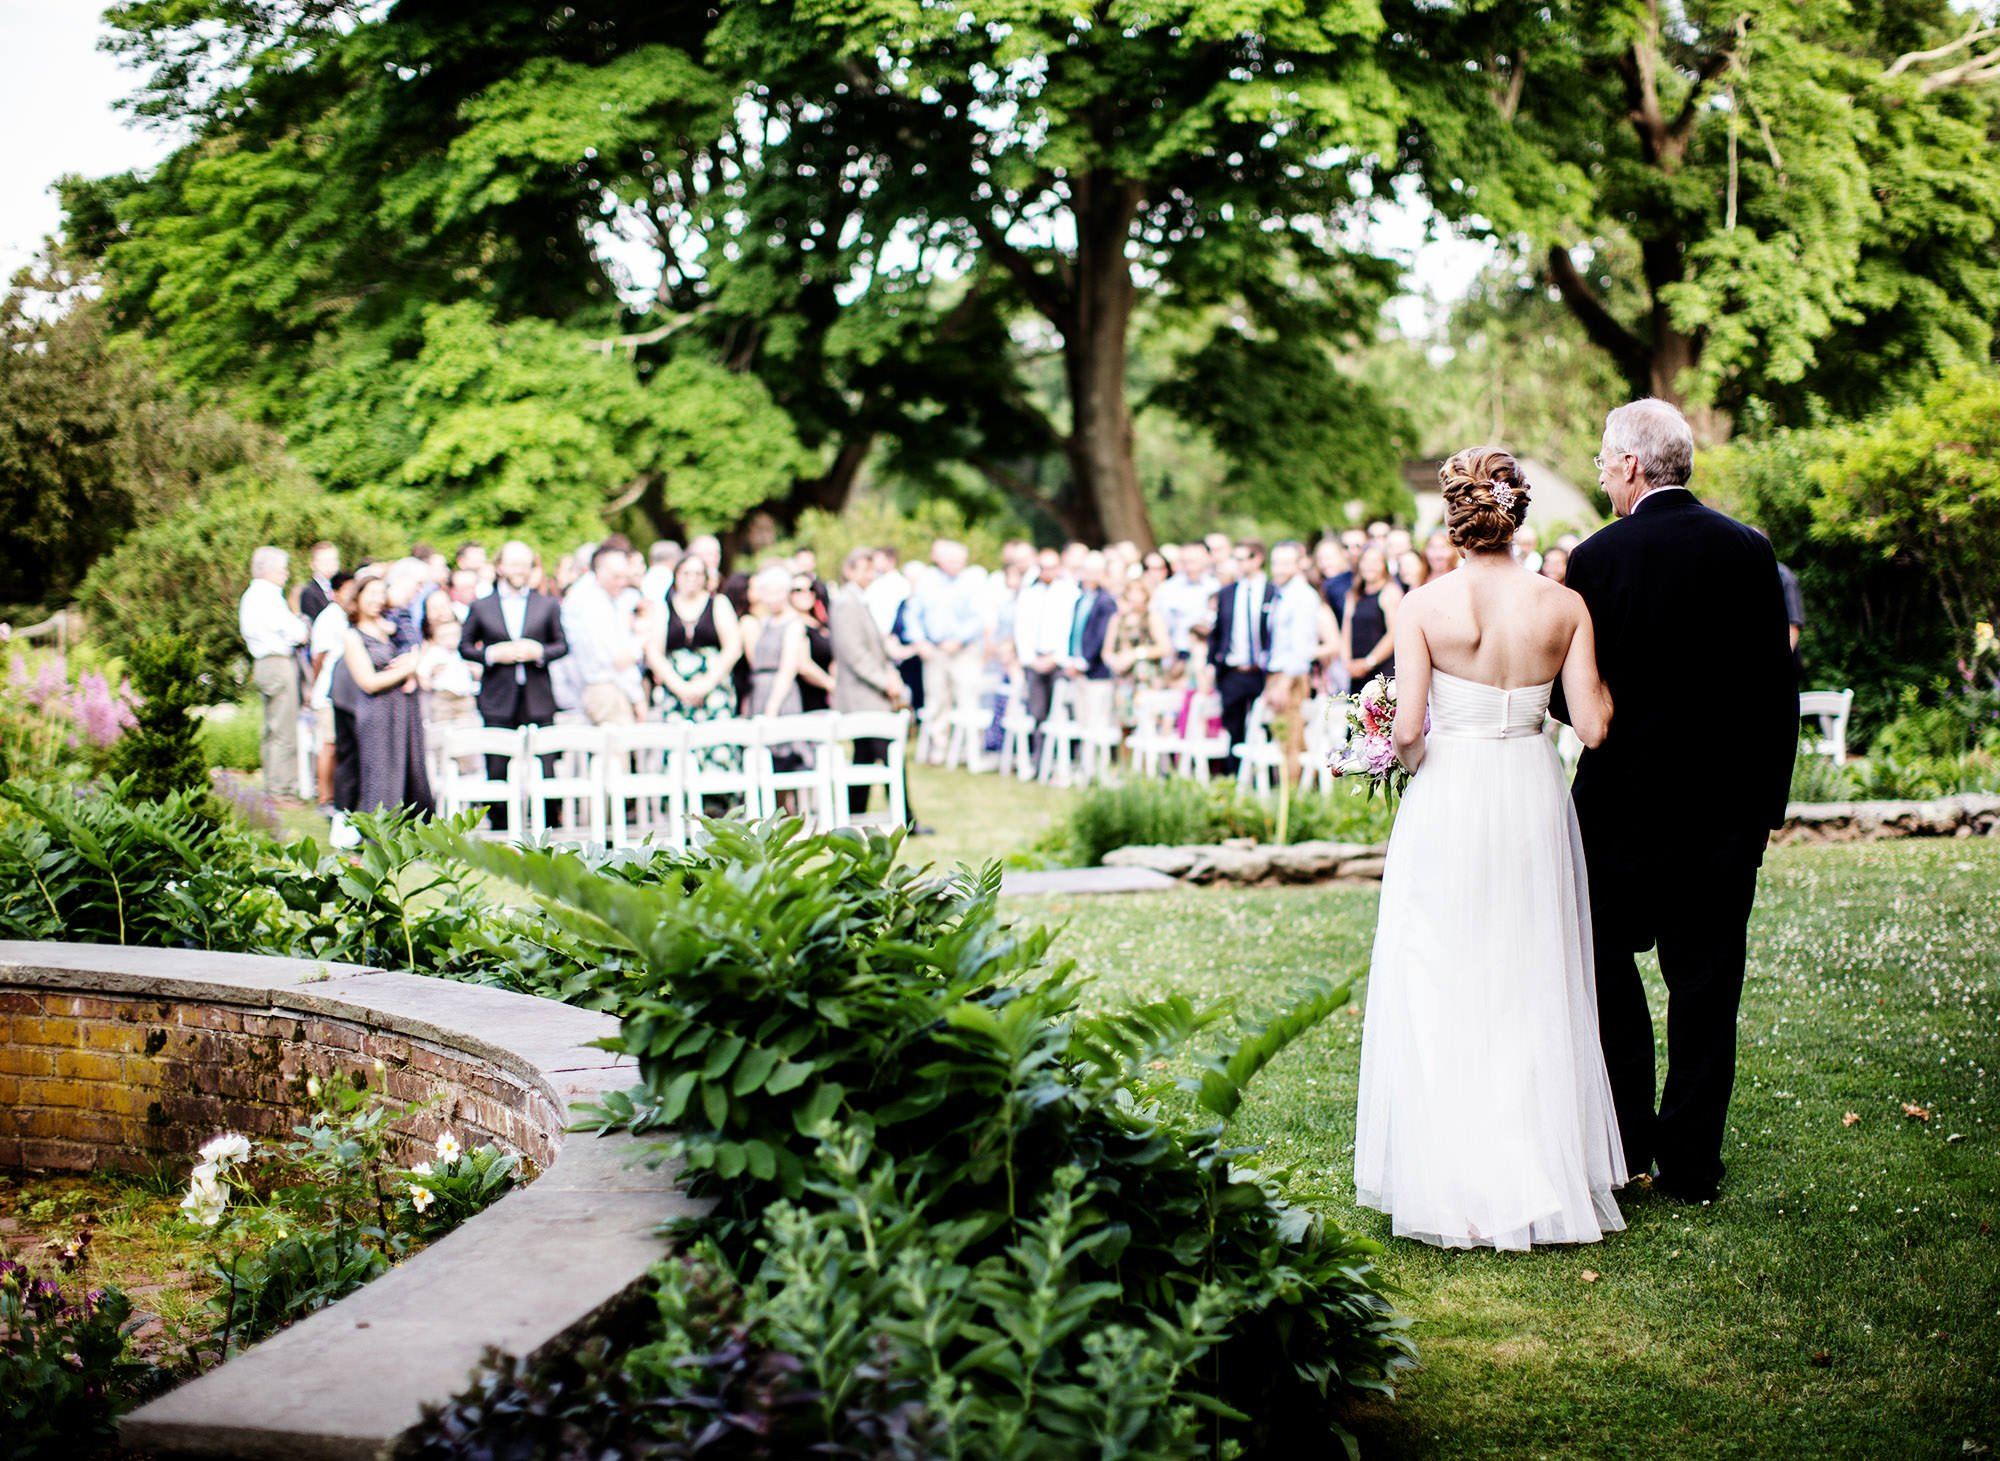 The bride and her father walk down the aisle for the wedding ceremony at Mount Hope Farm.